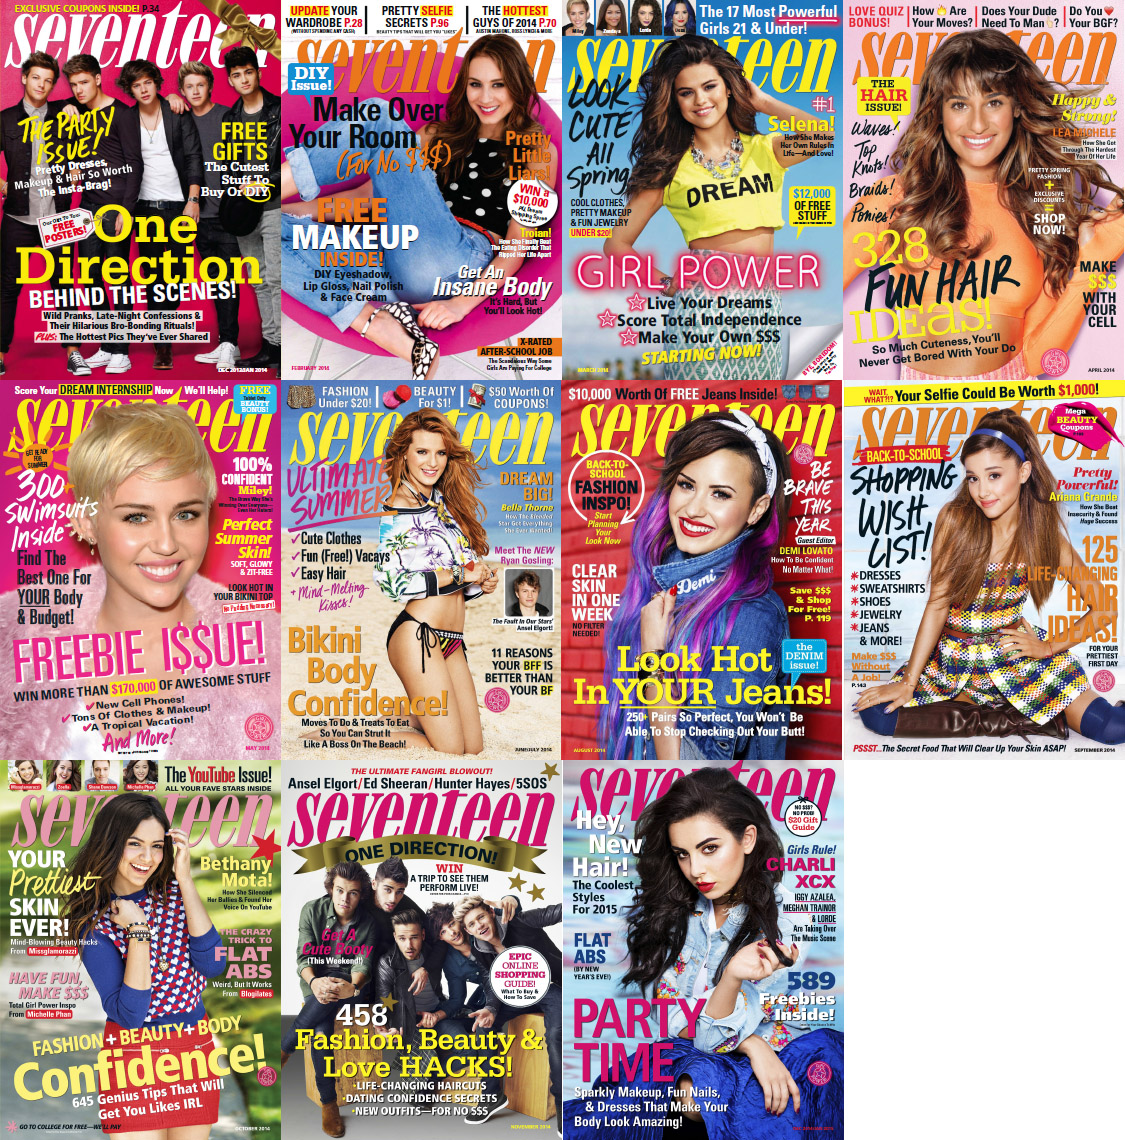 Seventeen USA Magazine - 2014 Full Year Issues Collection free download